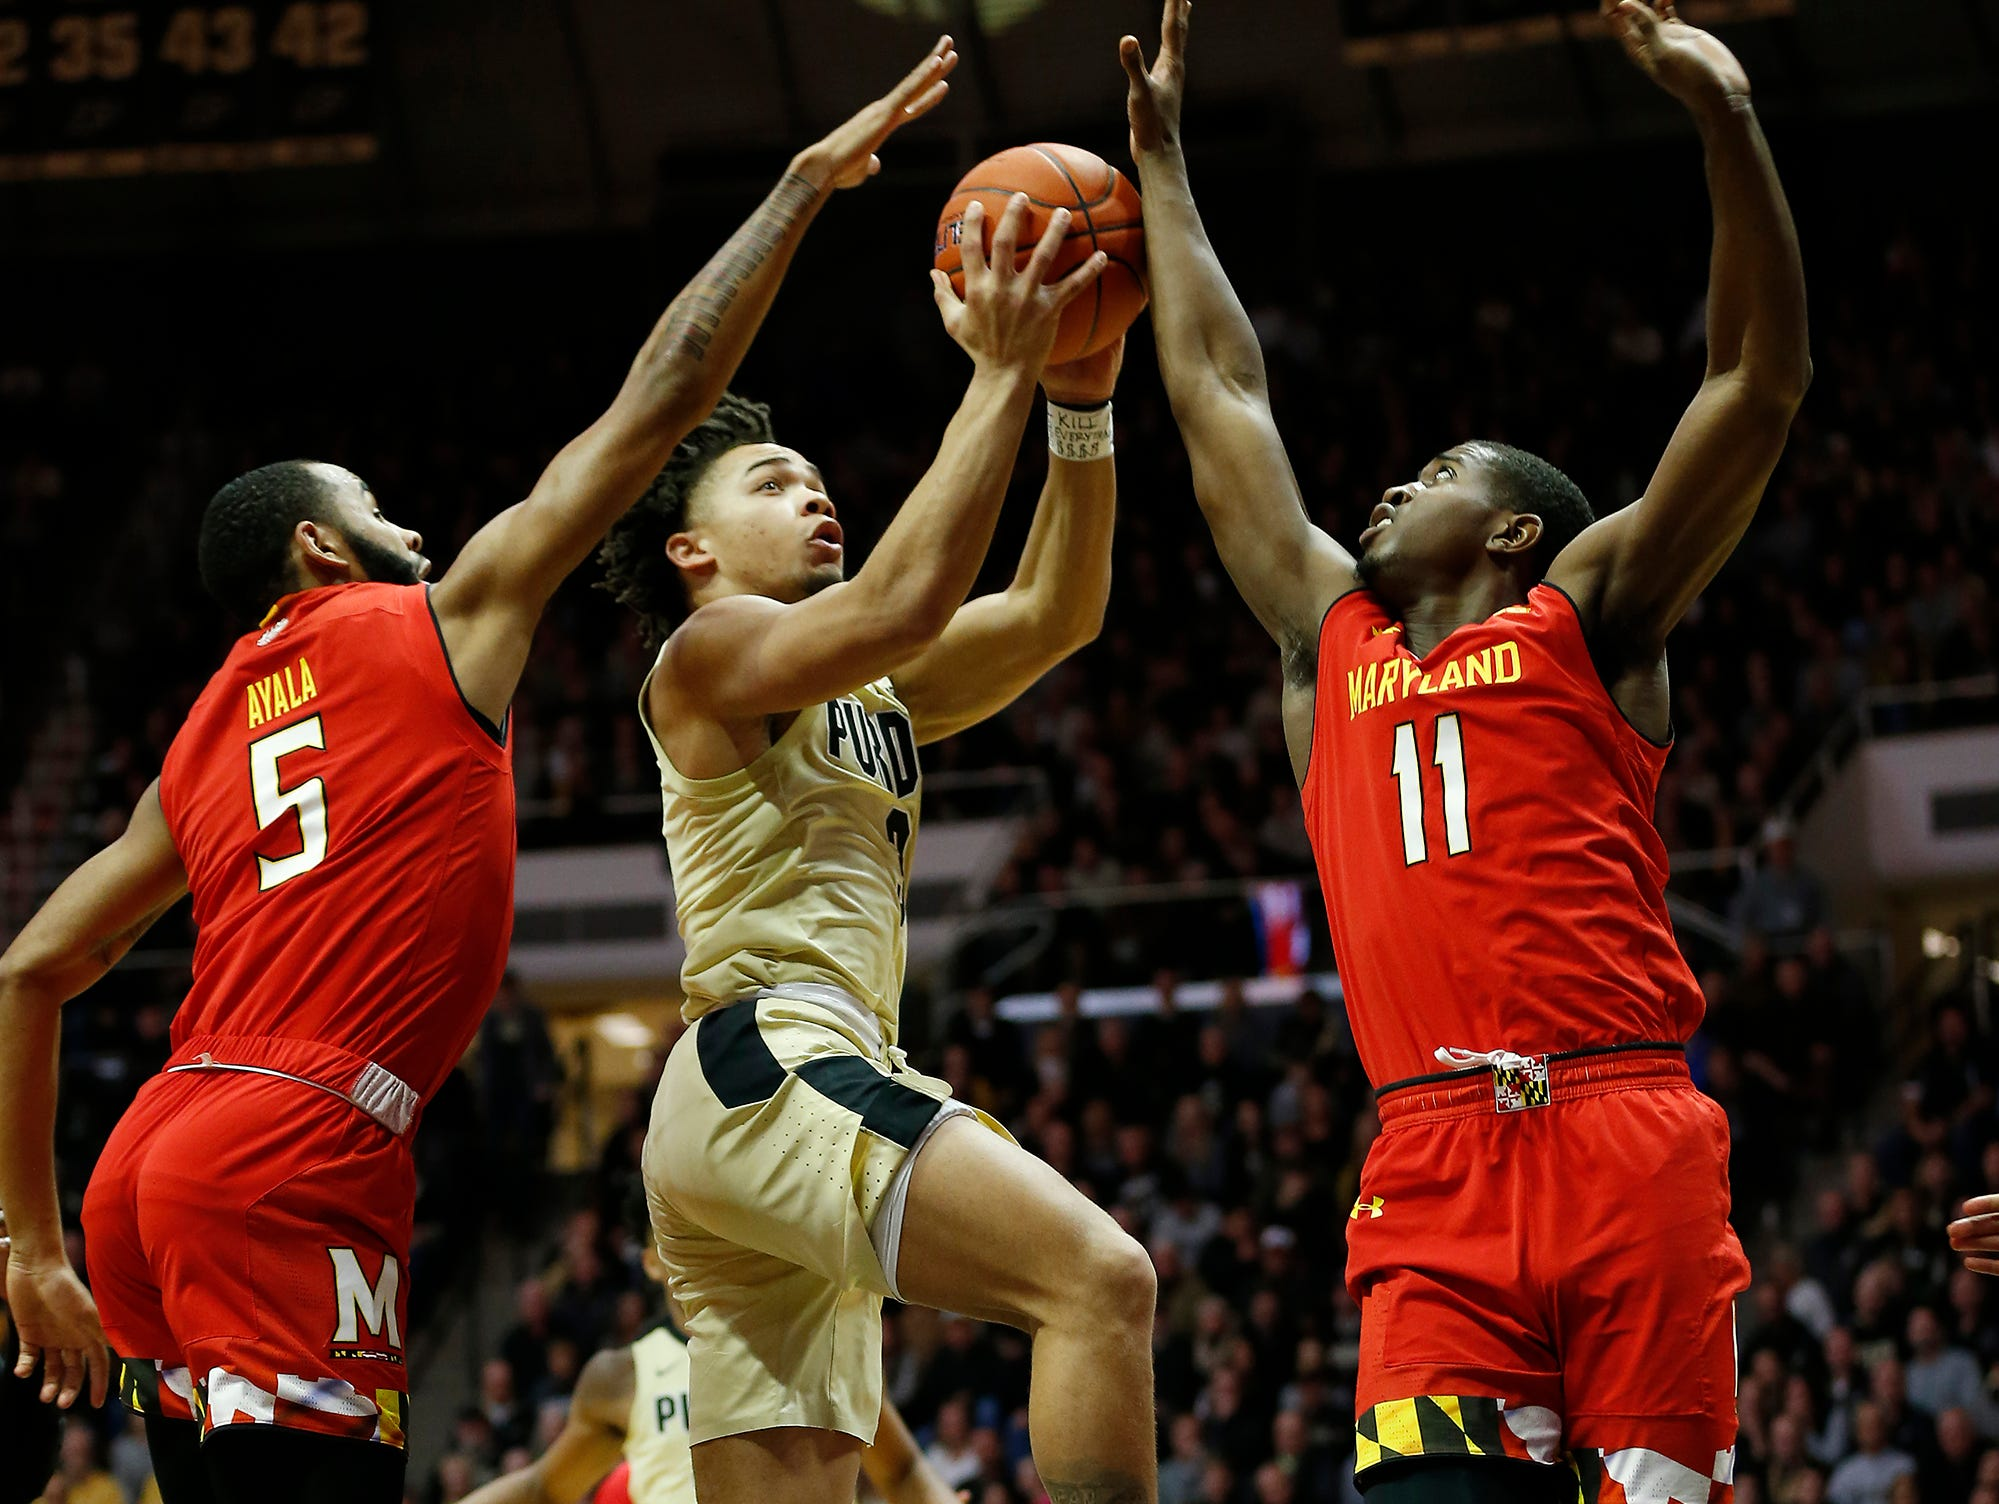 Carsen Edwards of Purdue drives between Eric Ayala and Darryl Morsell of Maryland for a shot Thursday, December 6, 2018, at Mackey Arena. Purdue defeated Maryland 62-60.